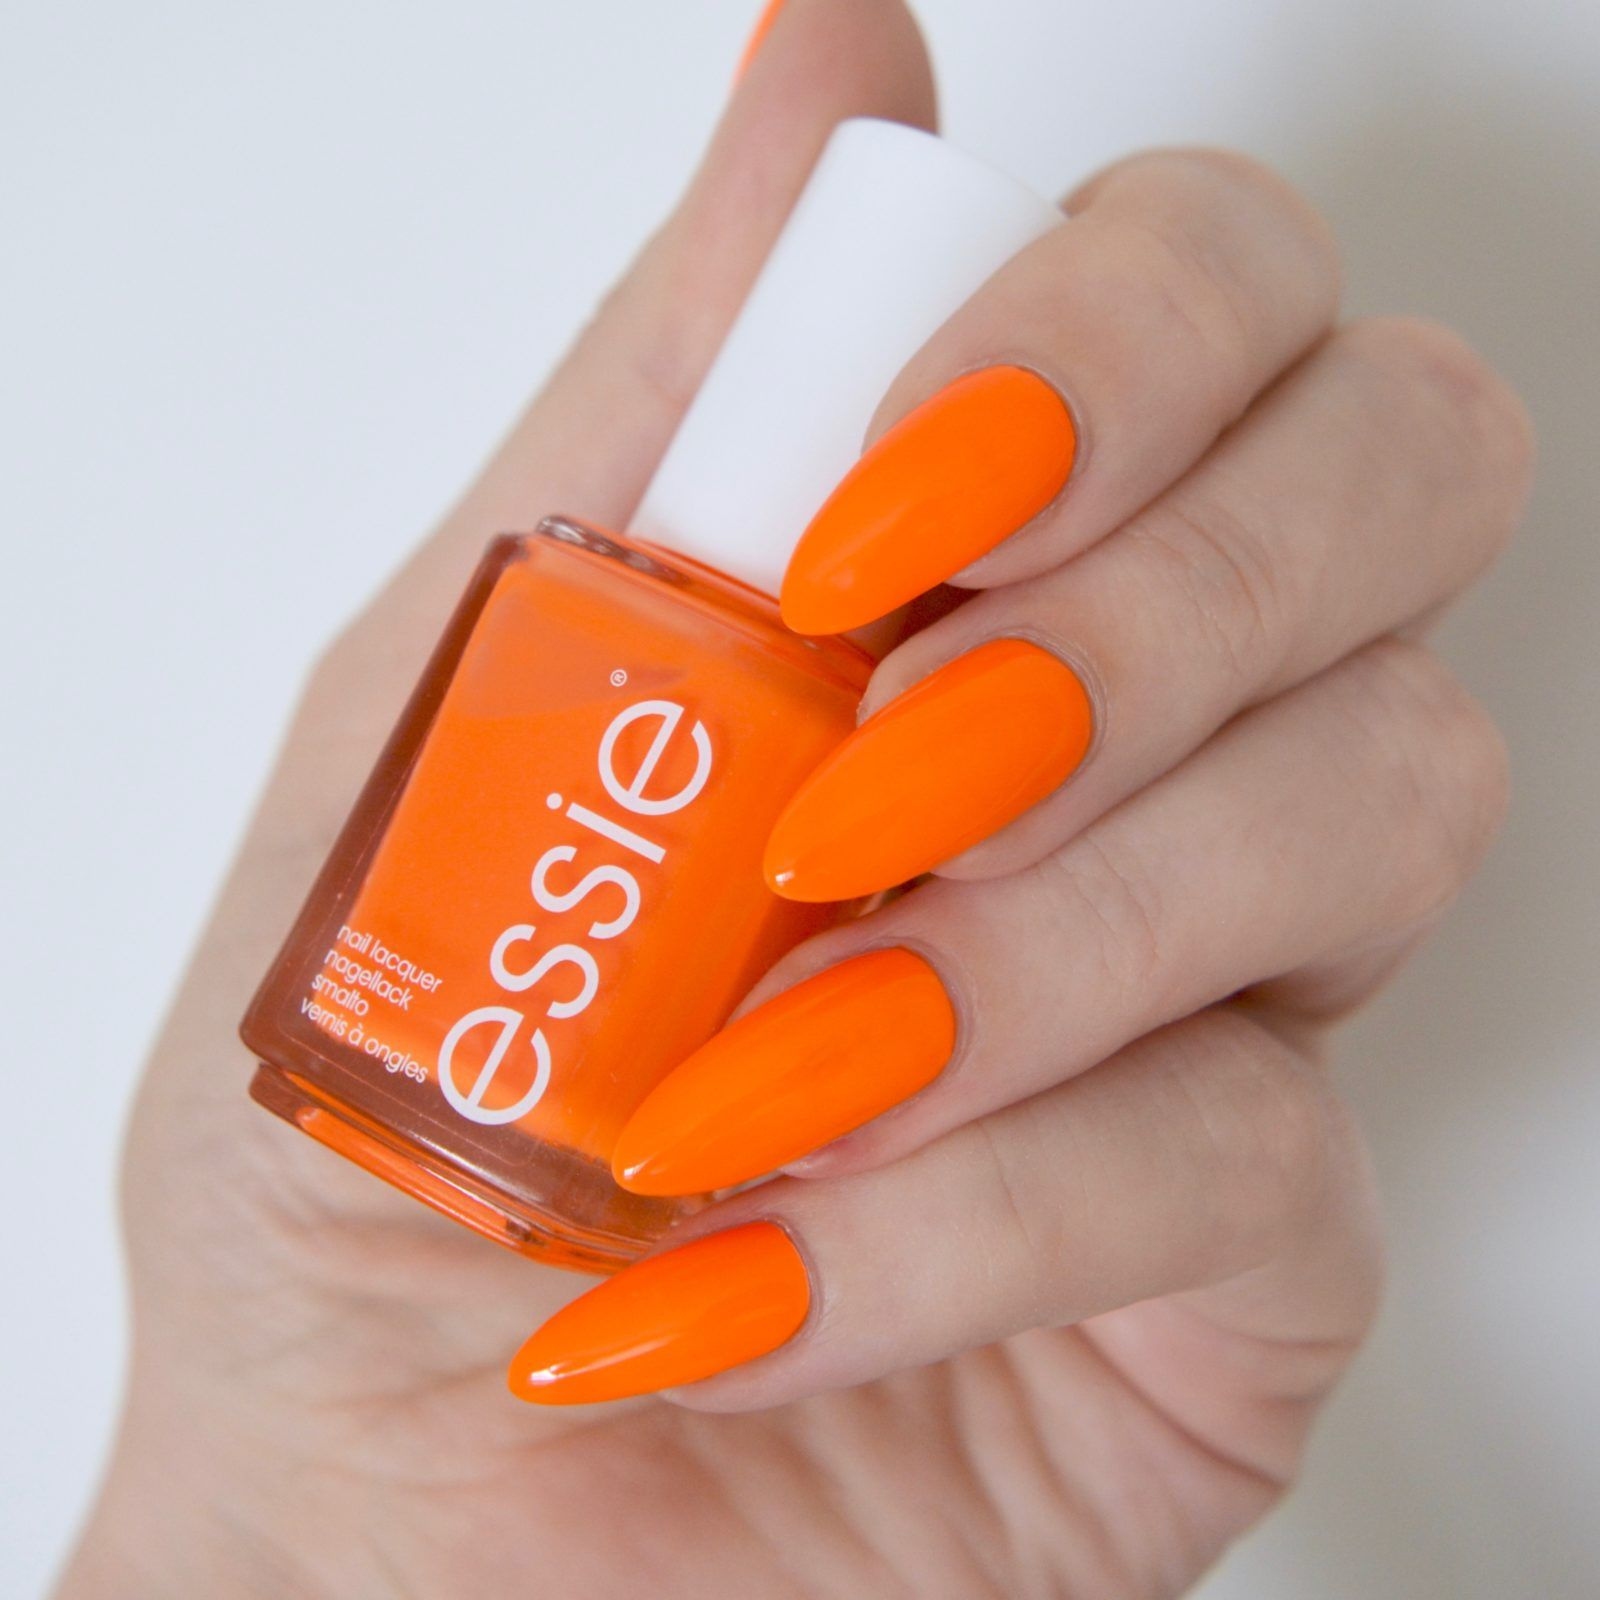 Essie Neon 2017 Review With Swatches | Neon orange nails, Orange ...